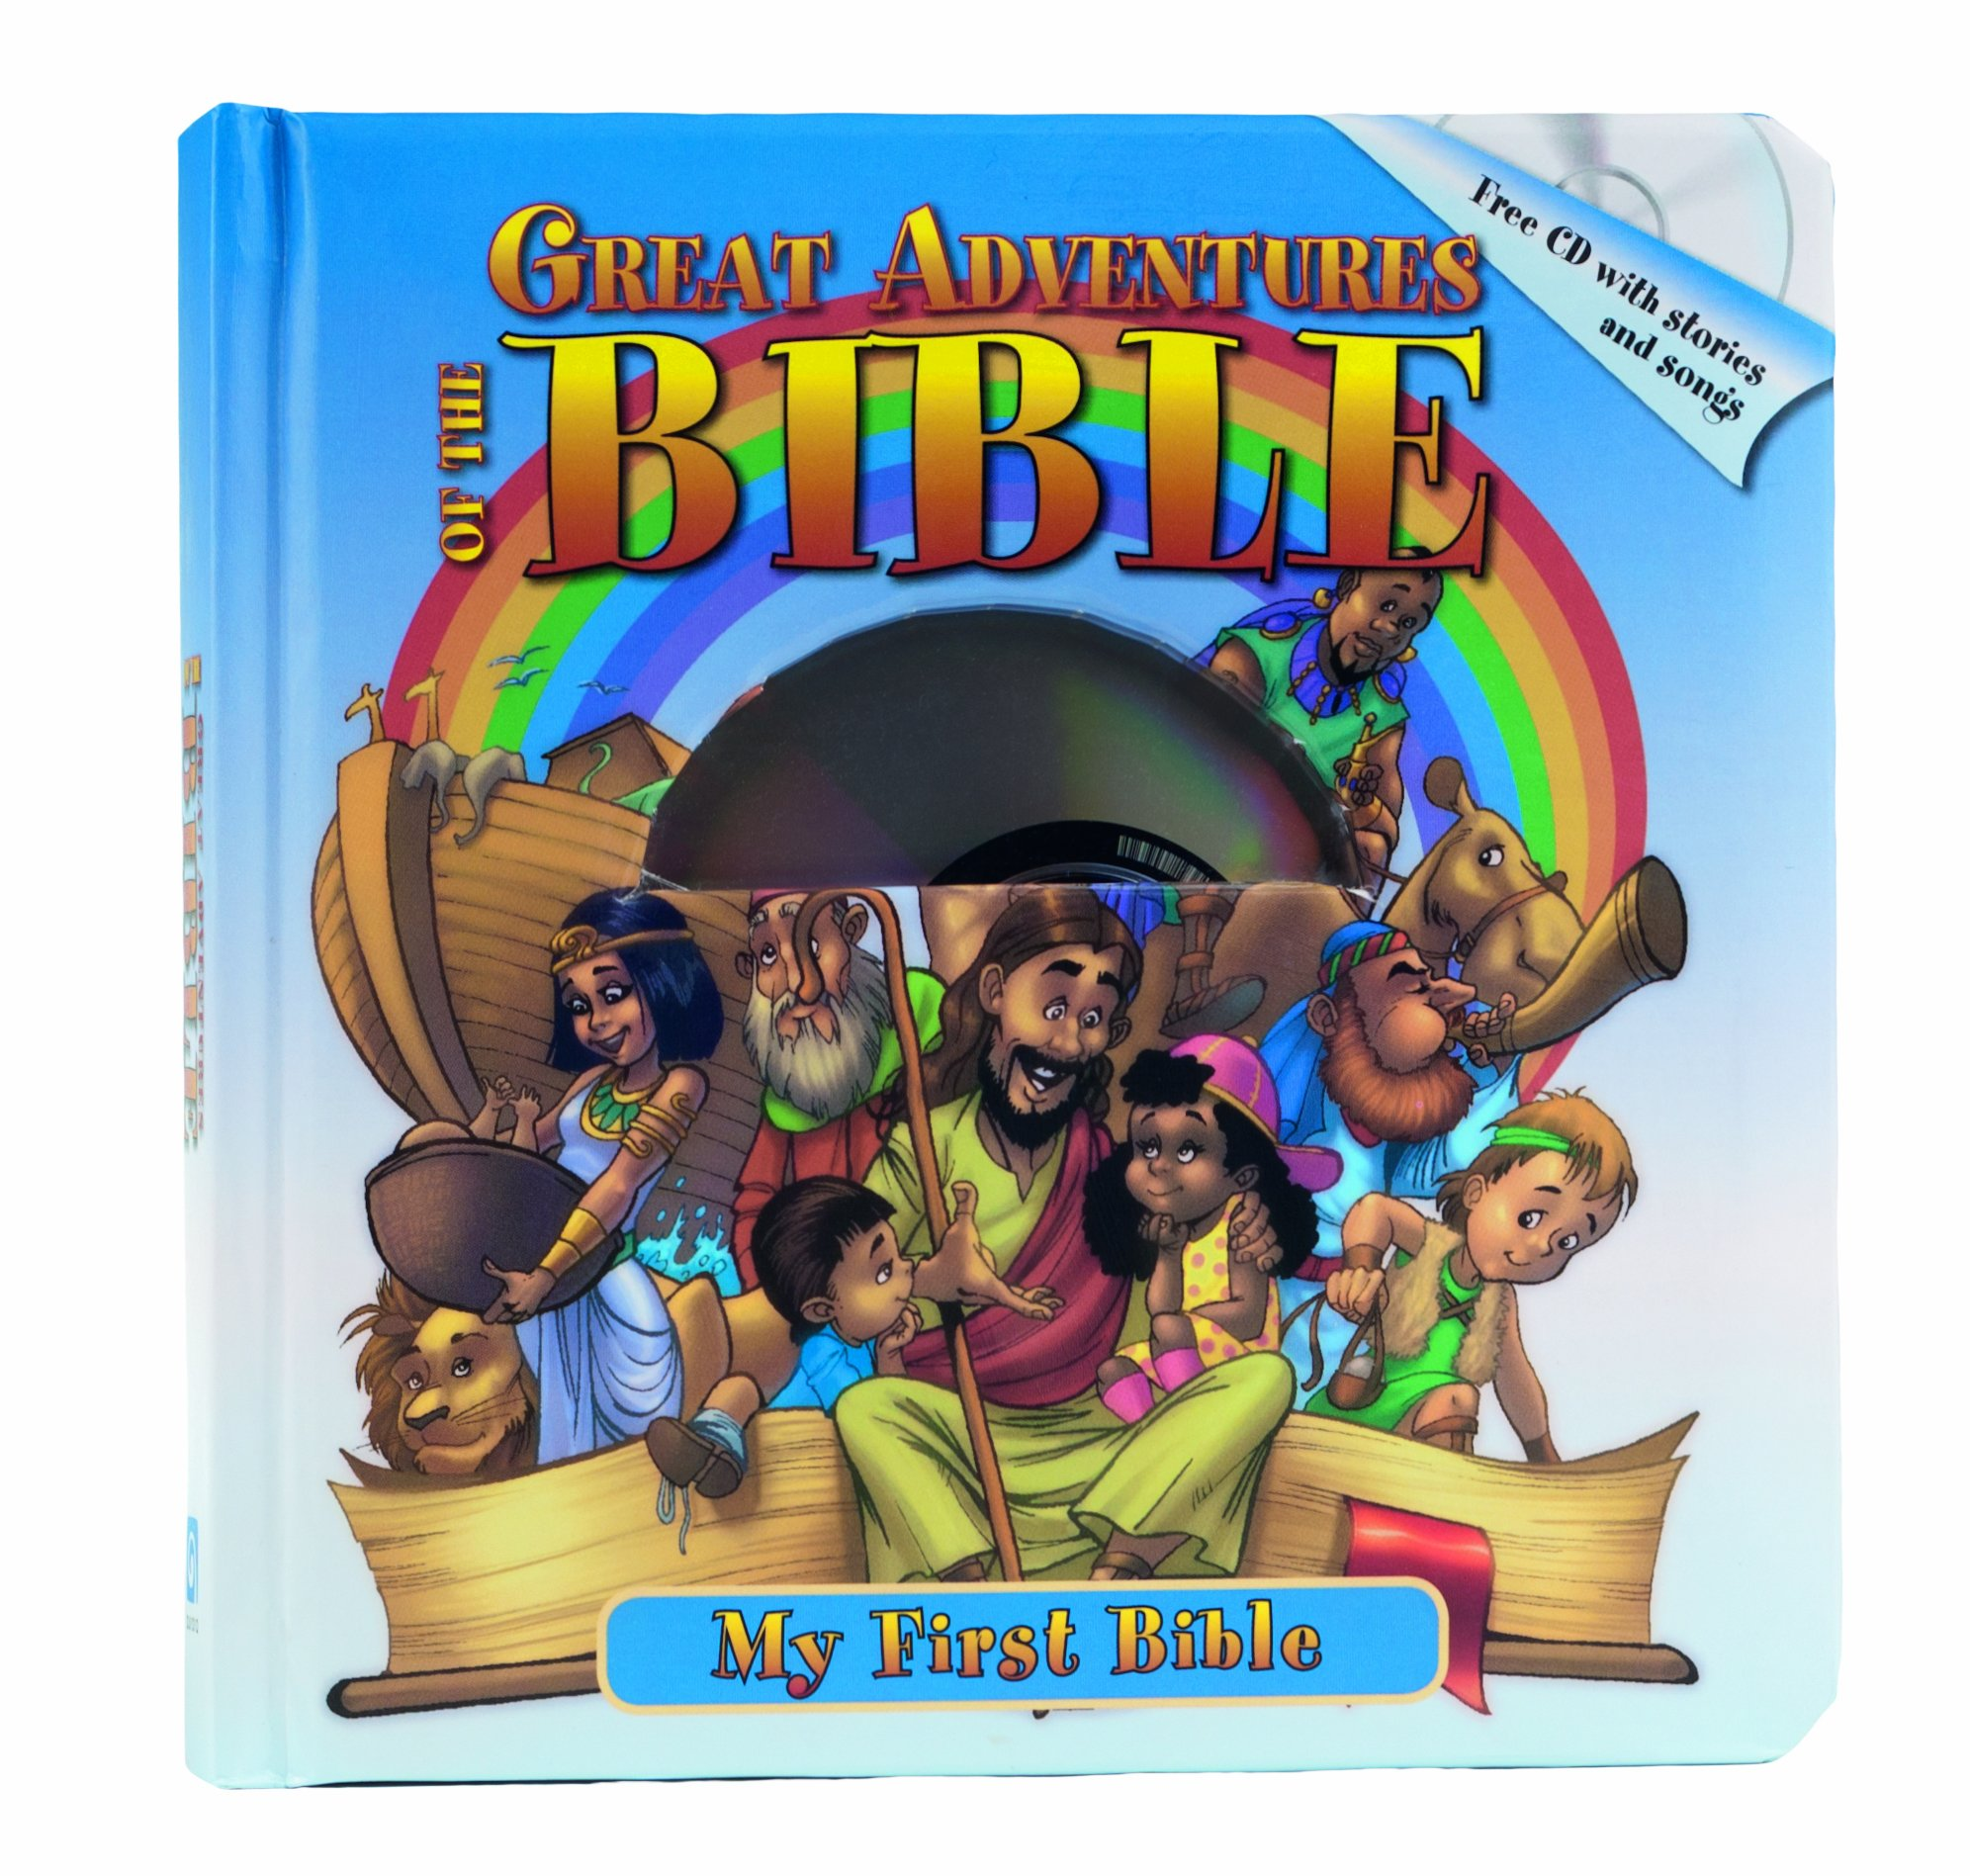 Great Adventures of the Bible (Book & CD) pdf